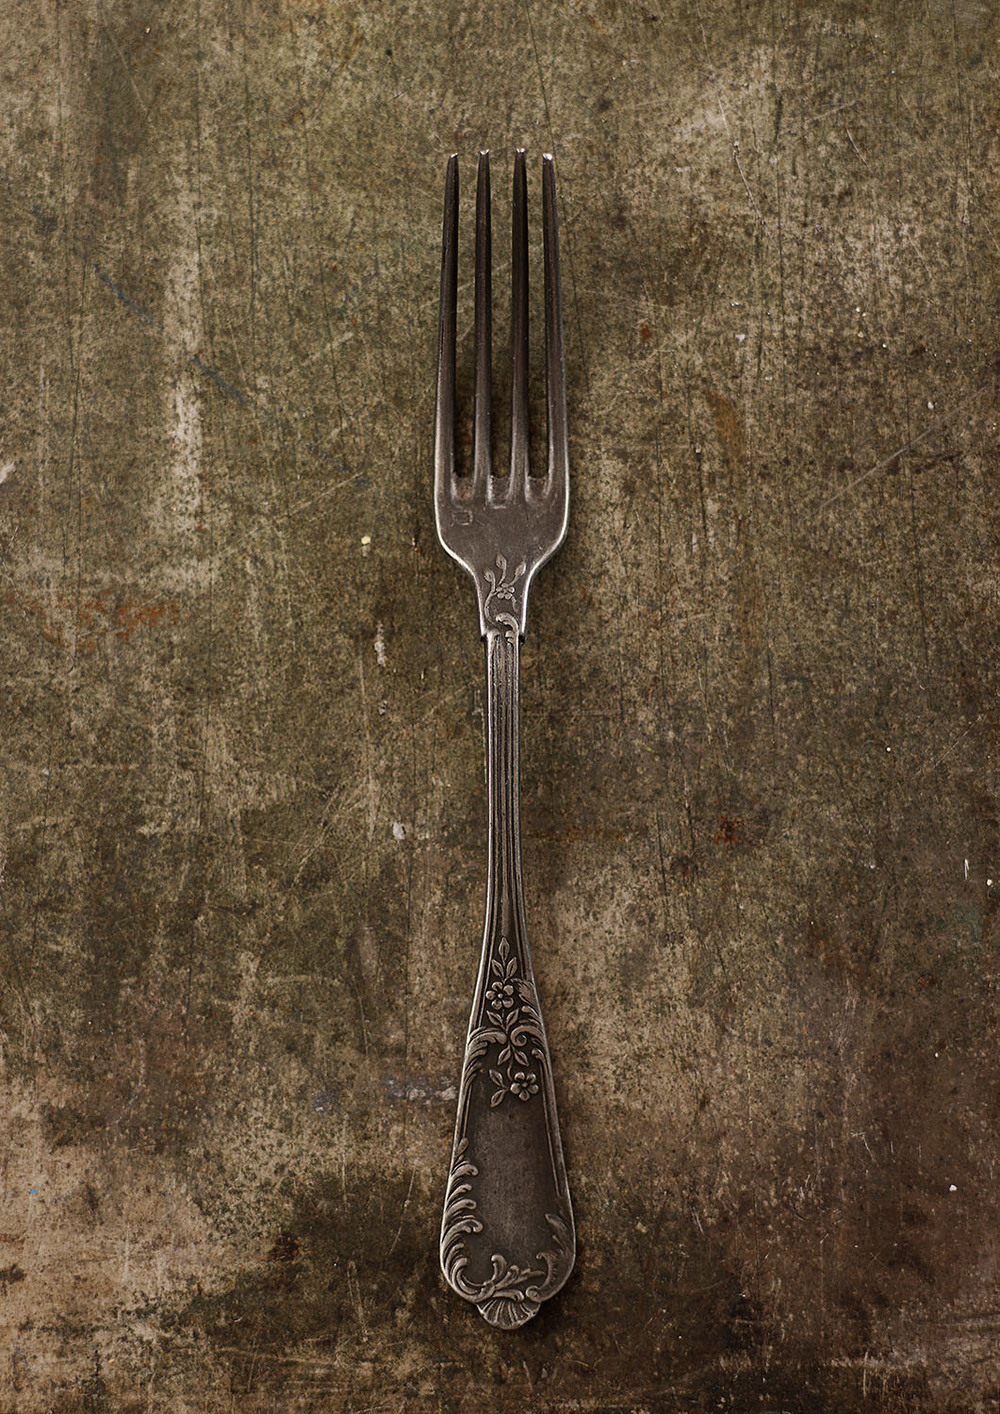 #15 Dark Metal Fork